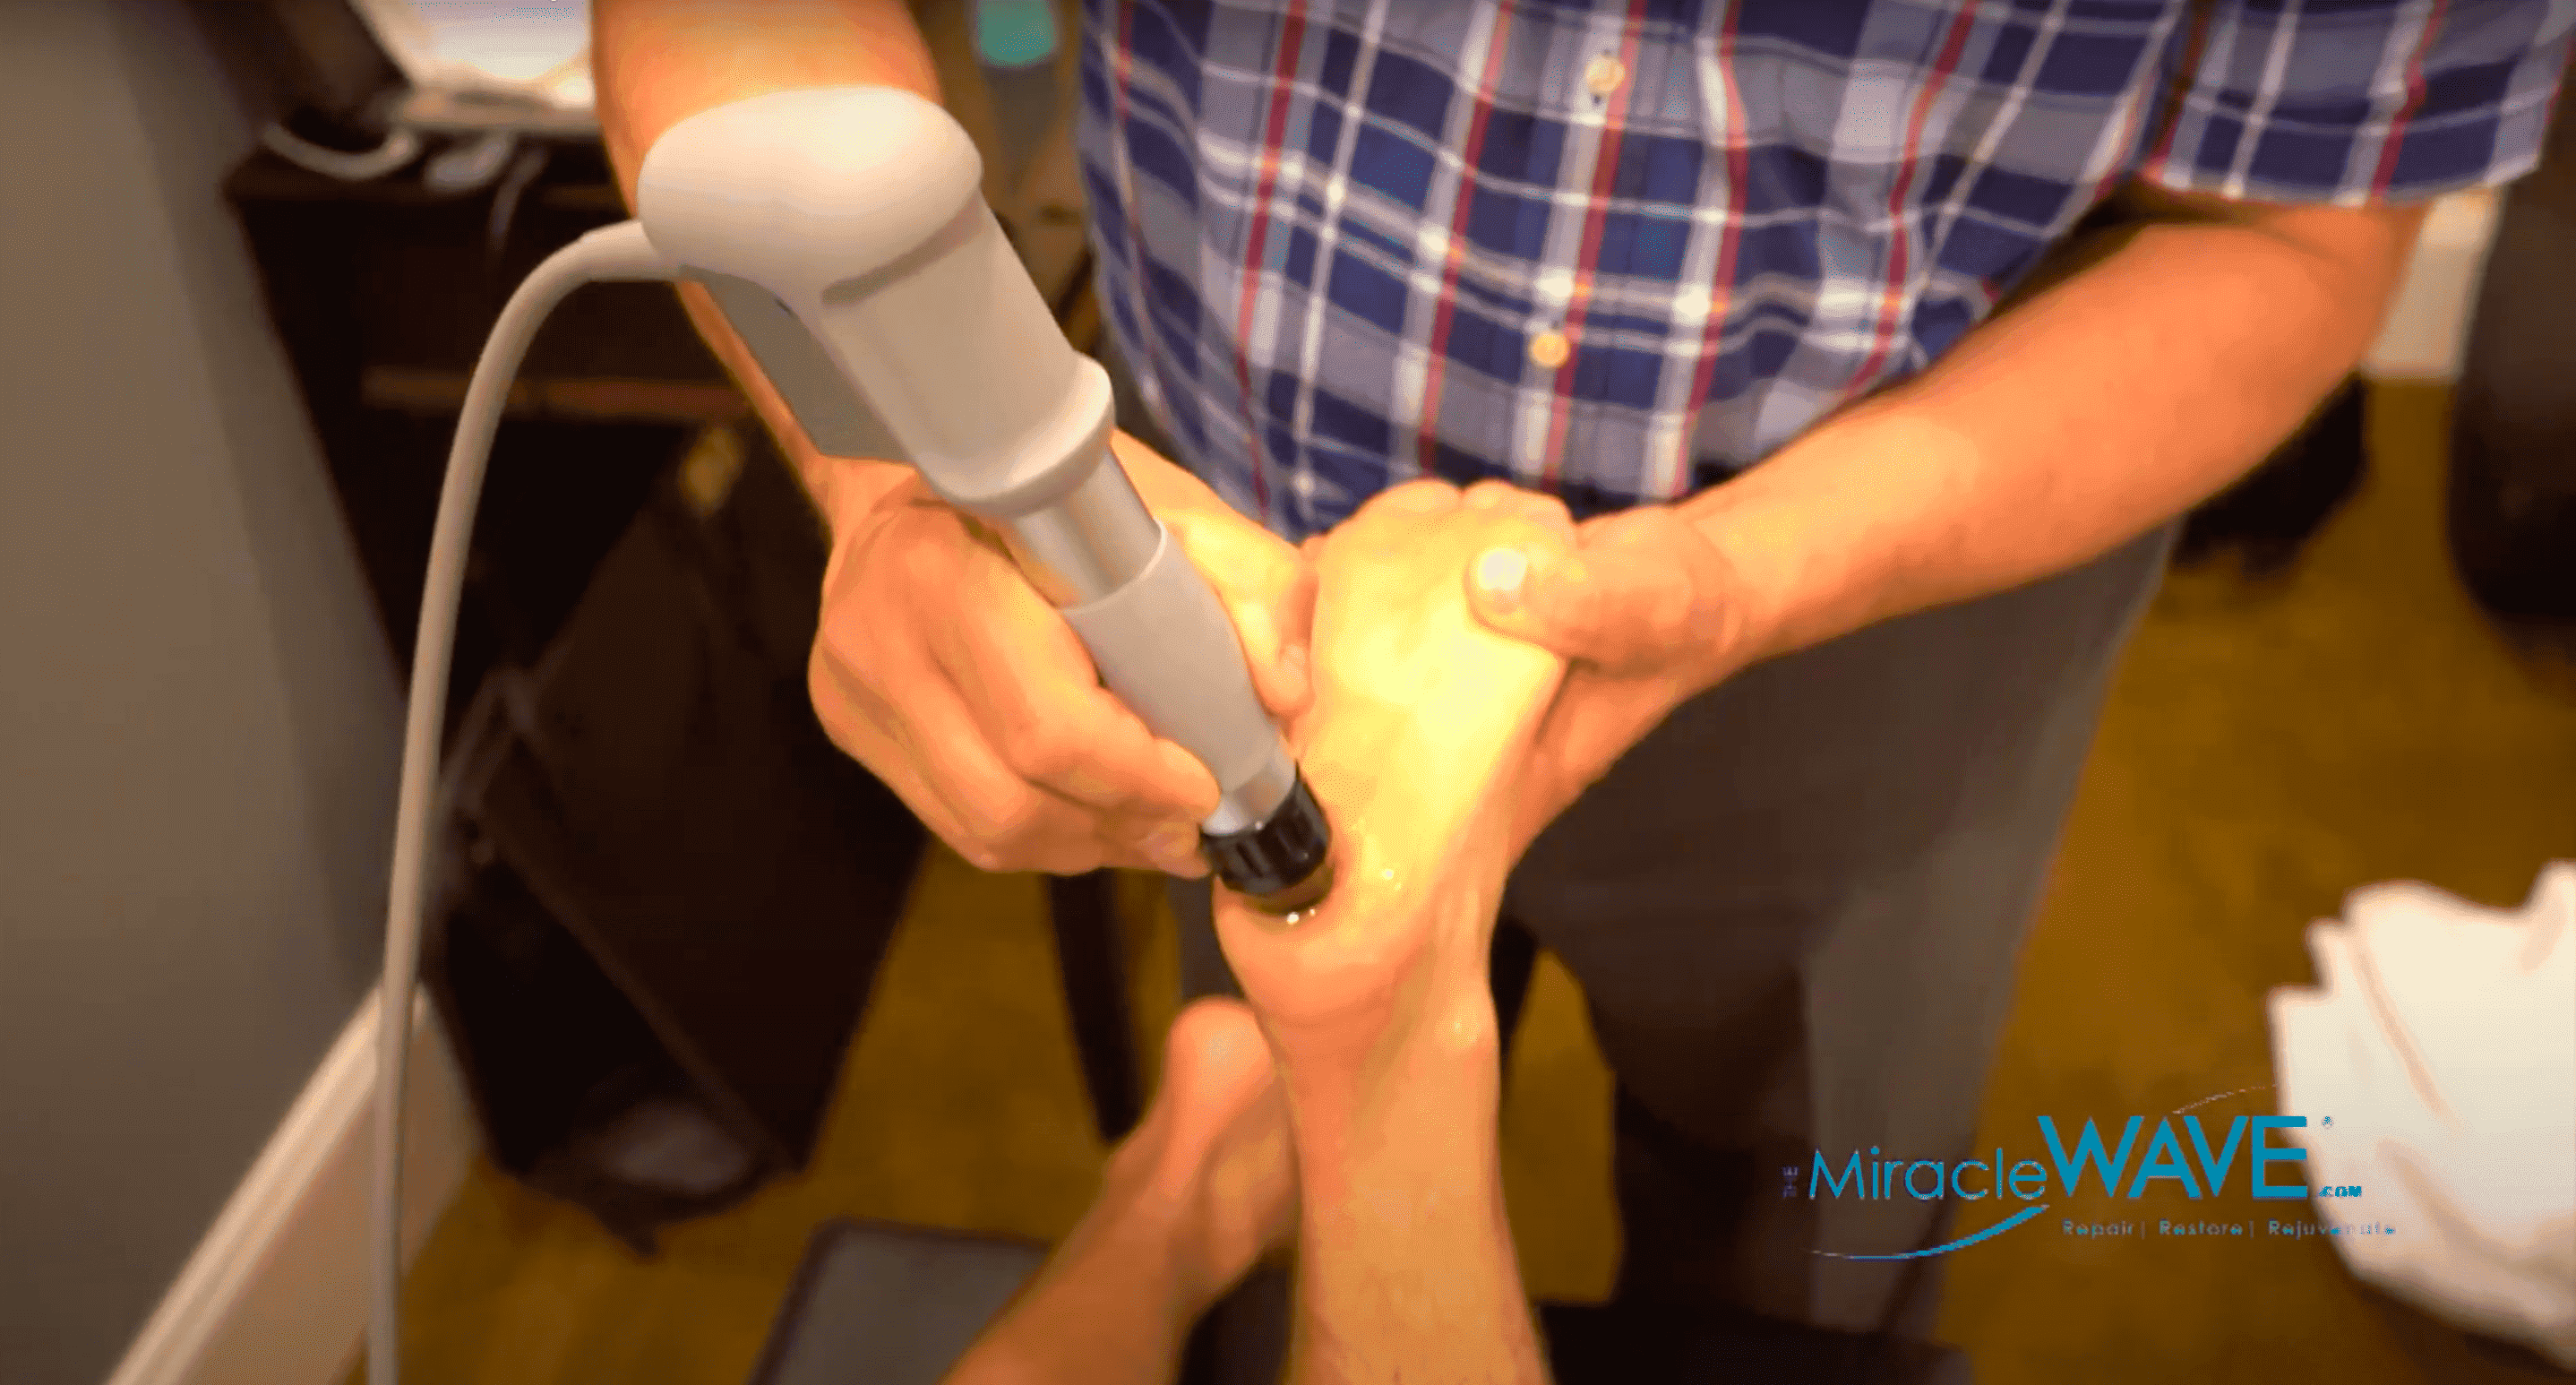 The Miracle Wave | Connecticut Disc and Laser Therapy Centers | Dr. James J. Dalfino | Shelton, CT